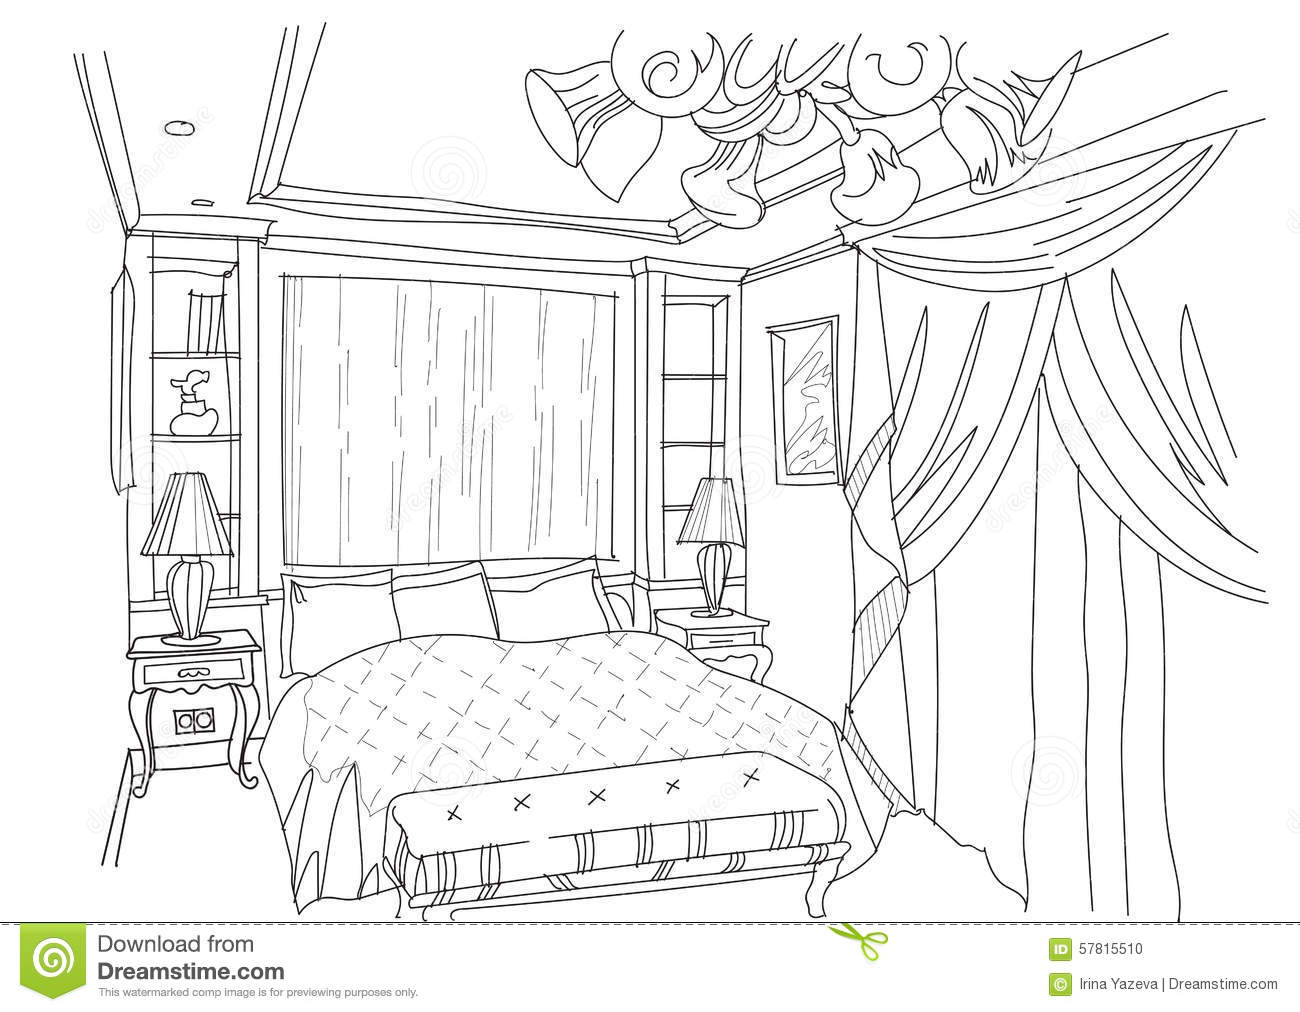 Bedroom drawing for kids - Contemporary Interior Doodles Bedroom Contemporary Interior Doodles Bedroom Stock Vector Image 57815510 Draw Bedroom